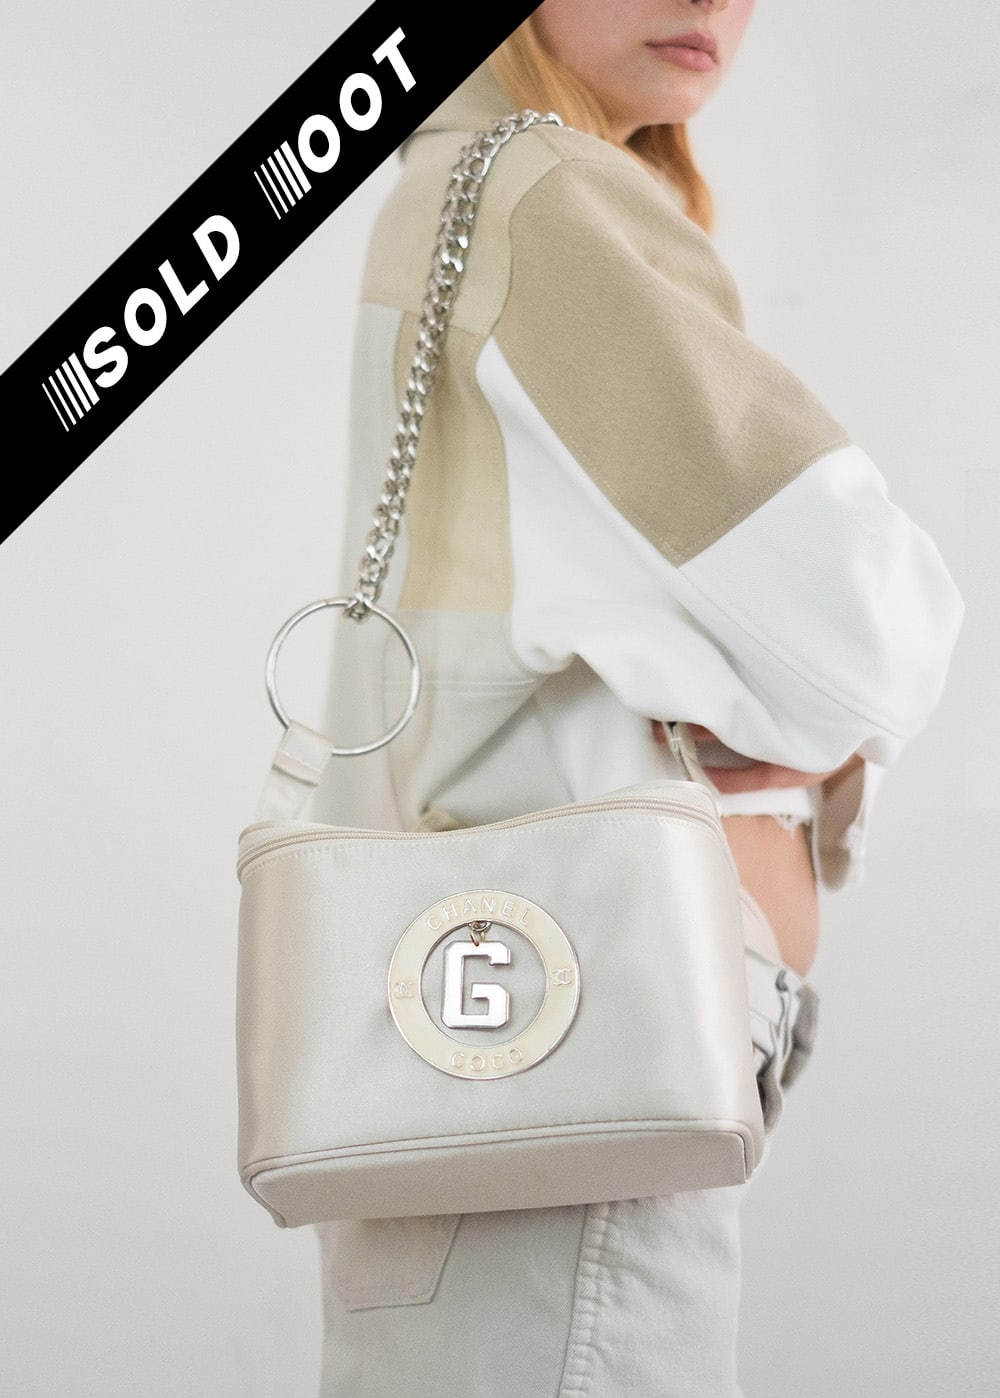 Fake Chanel G Bag 219